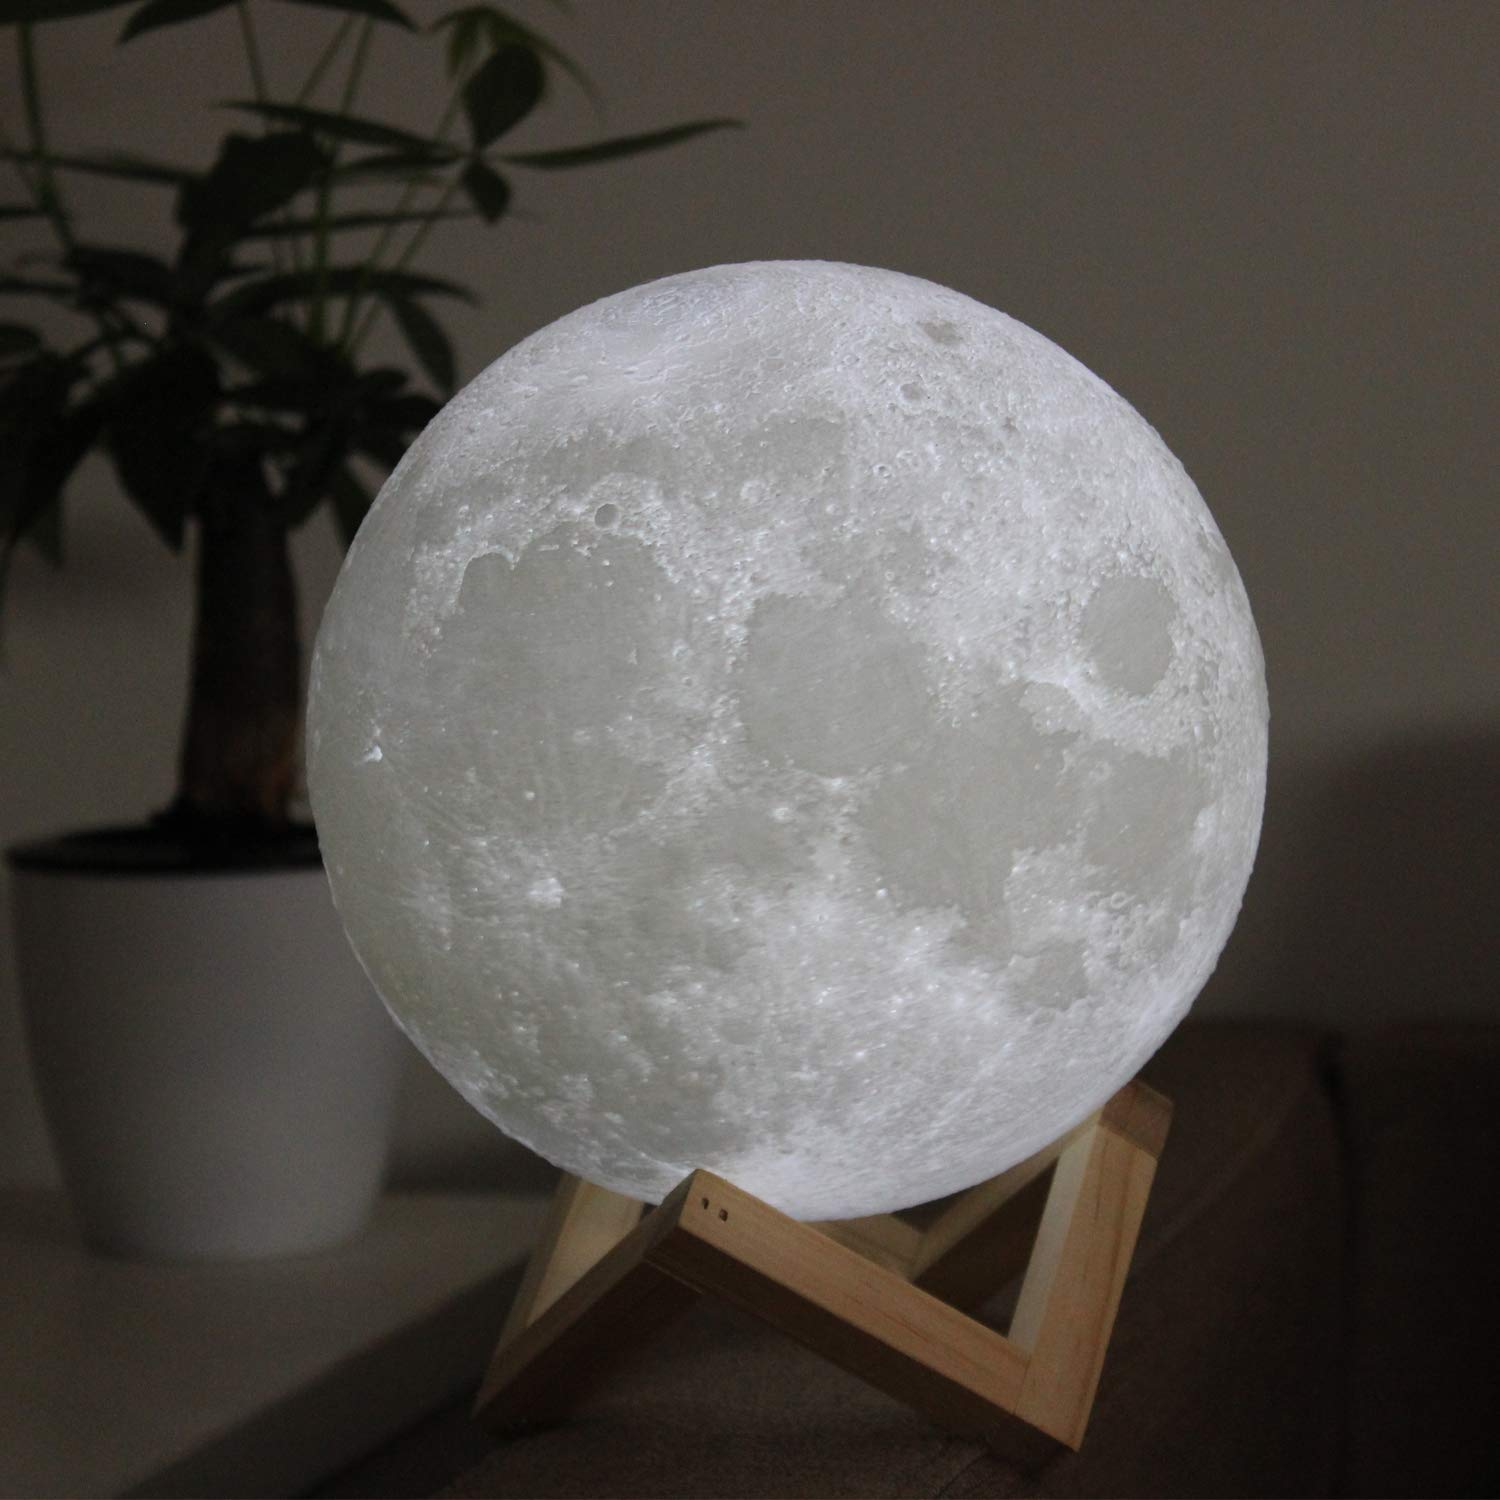 ACED LED Lighting Mysterious 3D Printing Moon Lamp LED Night Light Moonlight Desk Lamp Two Colors Changing Touch Stepless Dimming with USB Port, Rechargeble, Festival Decorative Lights 5.9Inch(15cm)